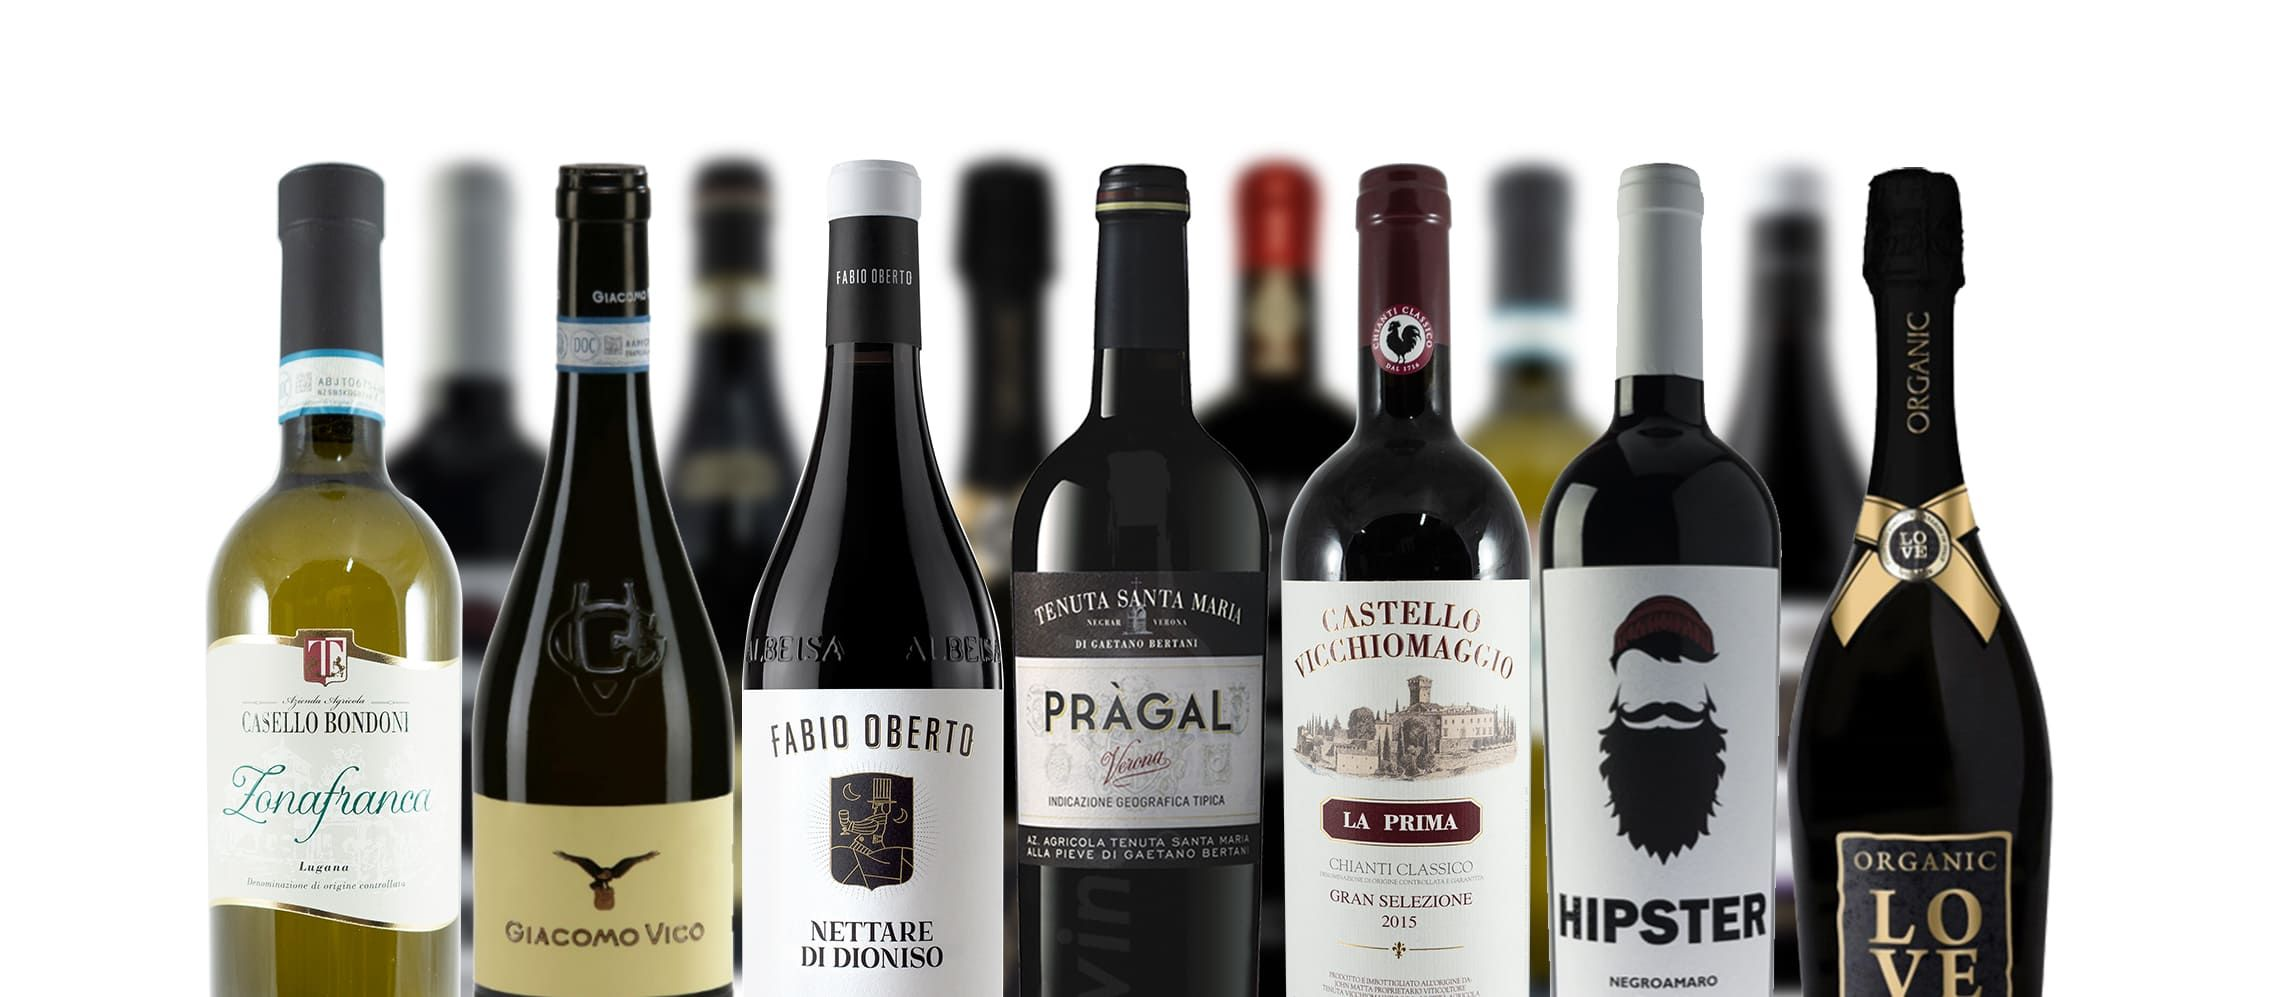 Photo for: Top 10 Italian Wines of 2019 for Your Wine Bar